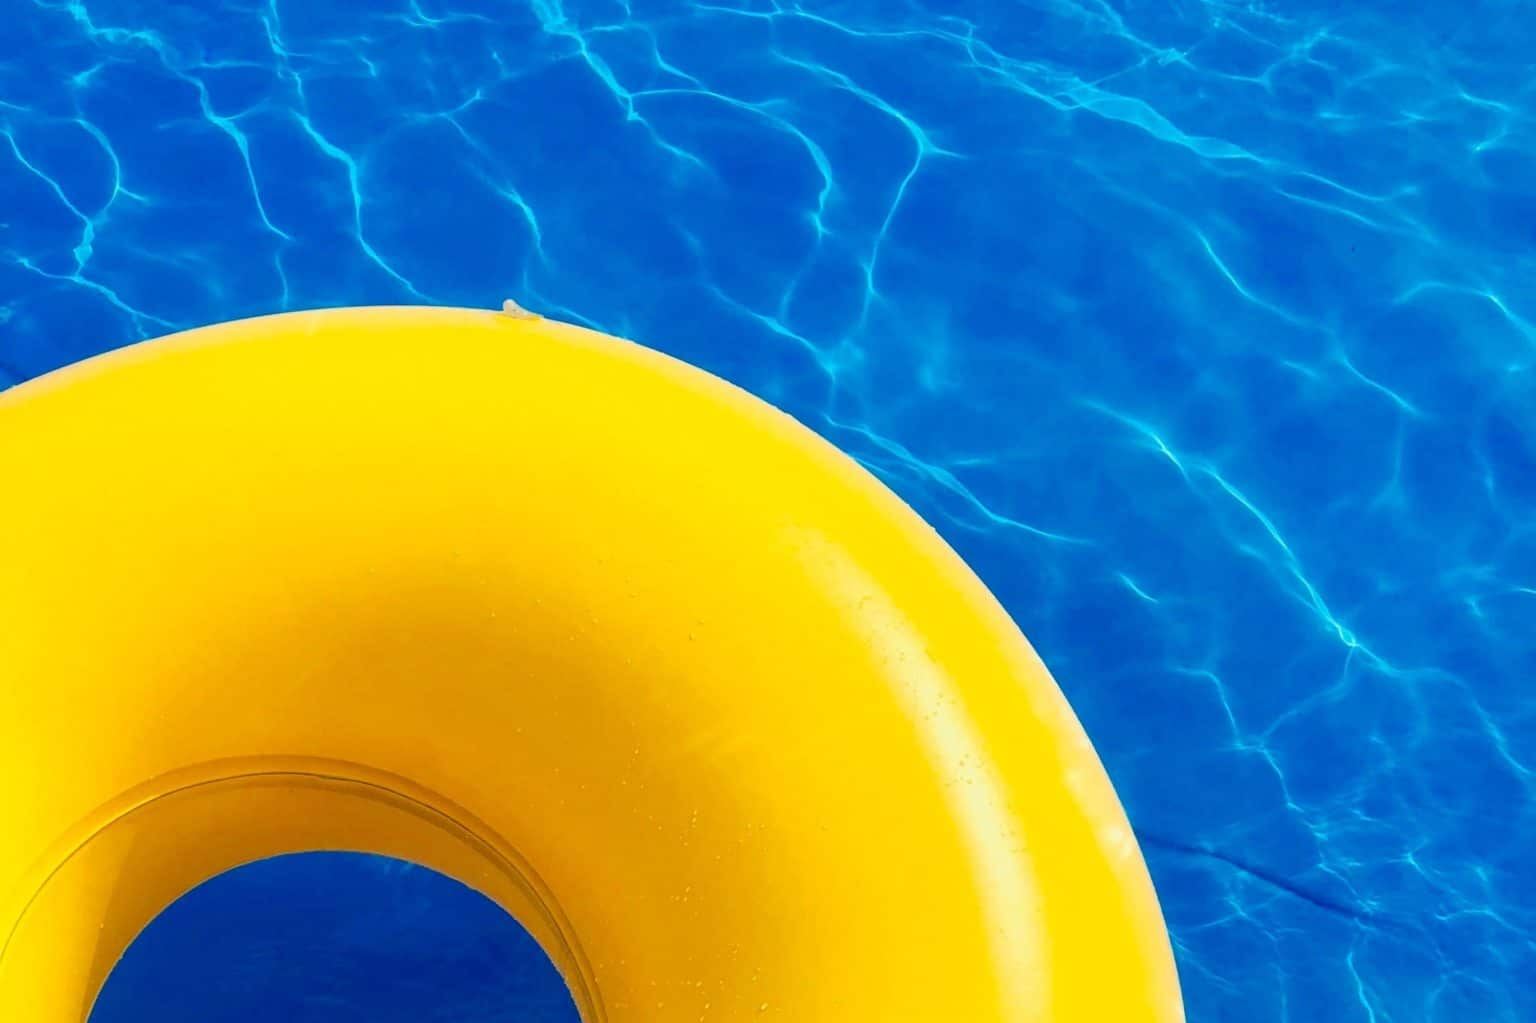 yellow inner tube in pool - pool inspections